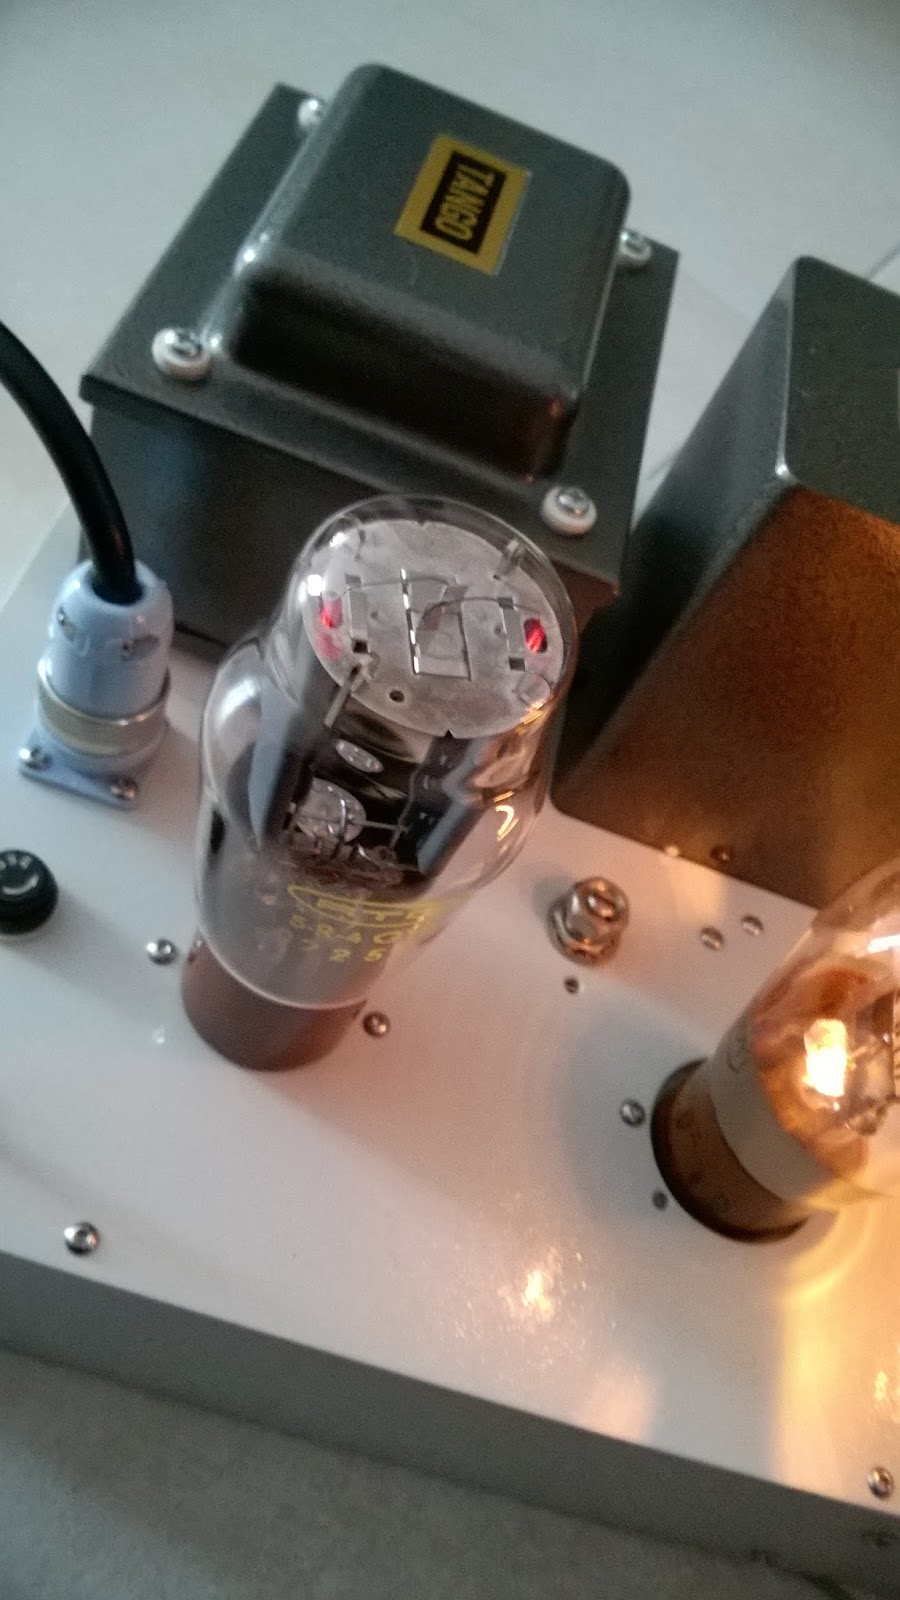 a Direct Heating Triode blog